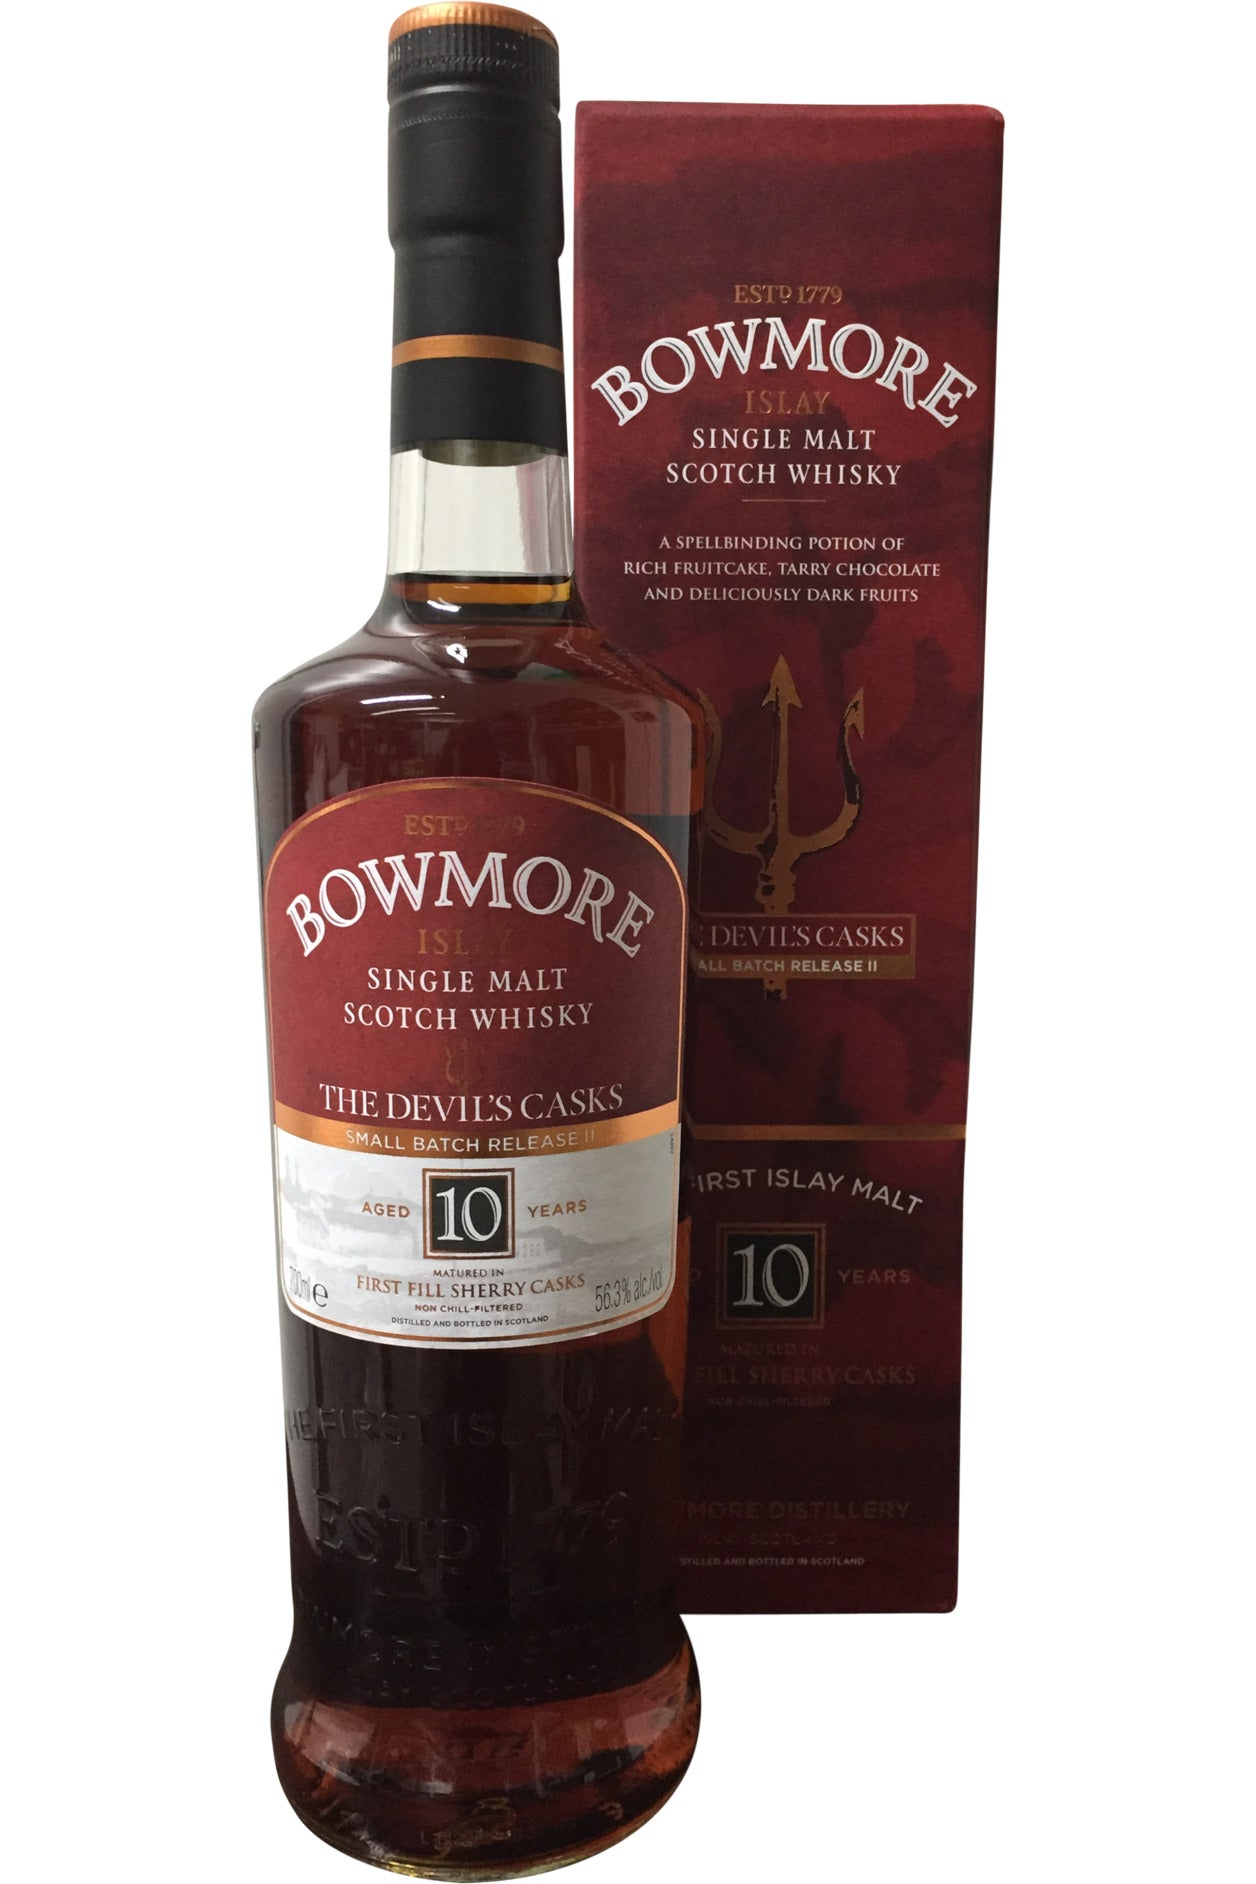 Bowmore Devils Cask 10 Year Old Small Batch Release II Whisky | 56.3% 700ml